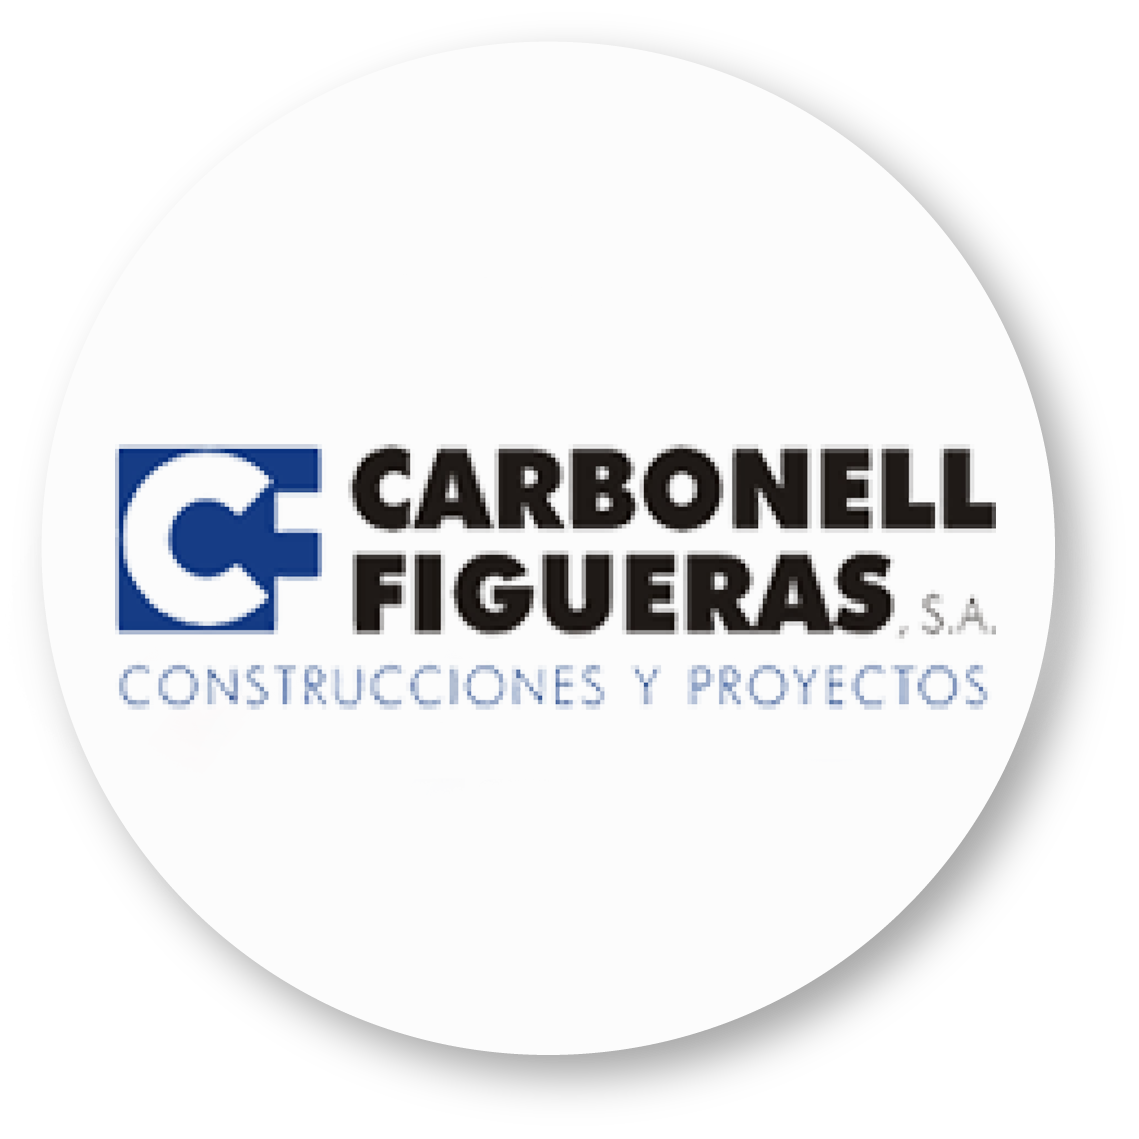 Carbonell Figueres Icono